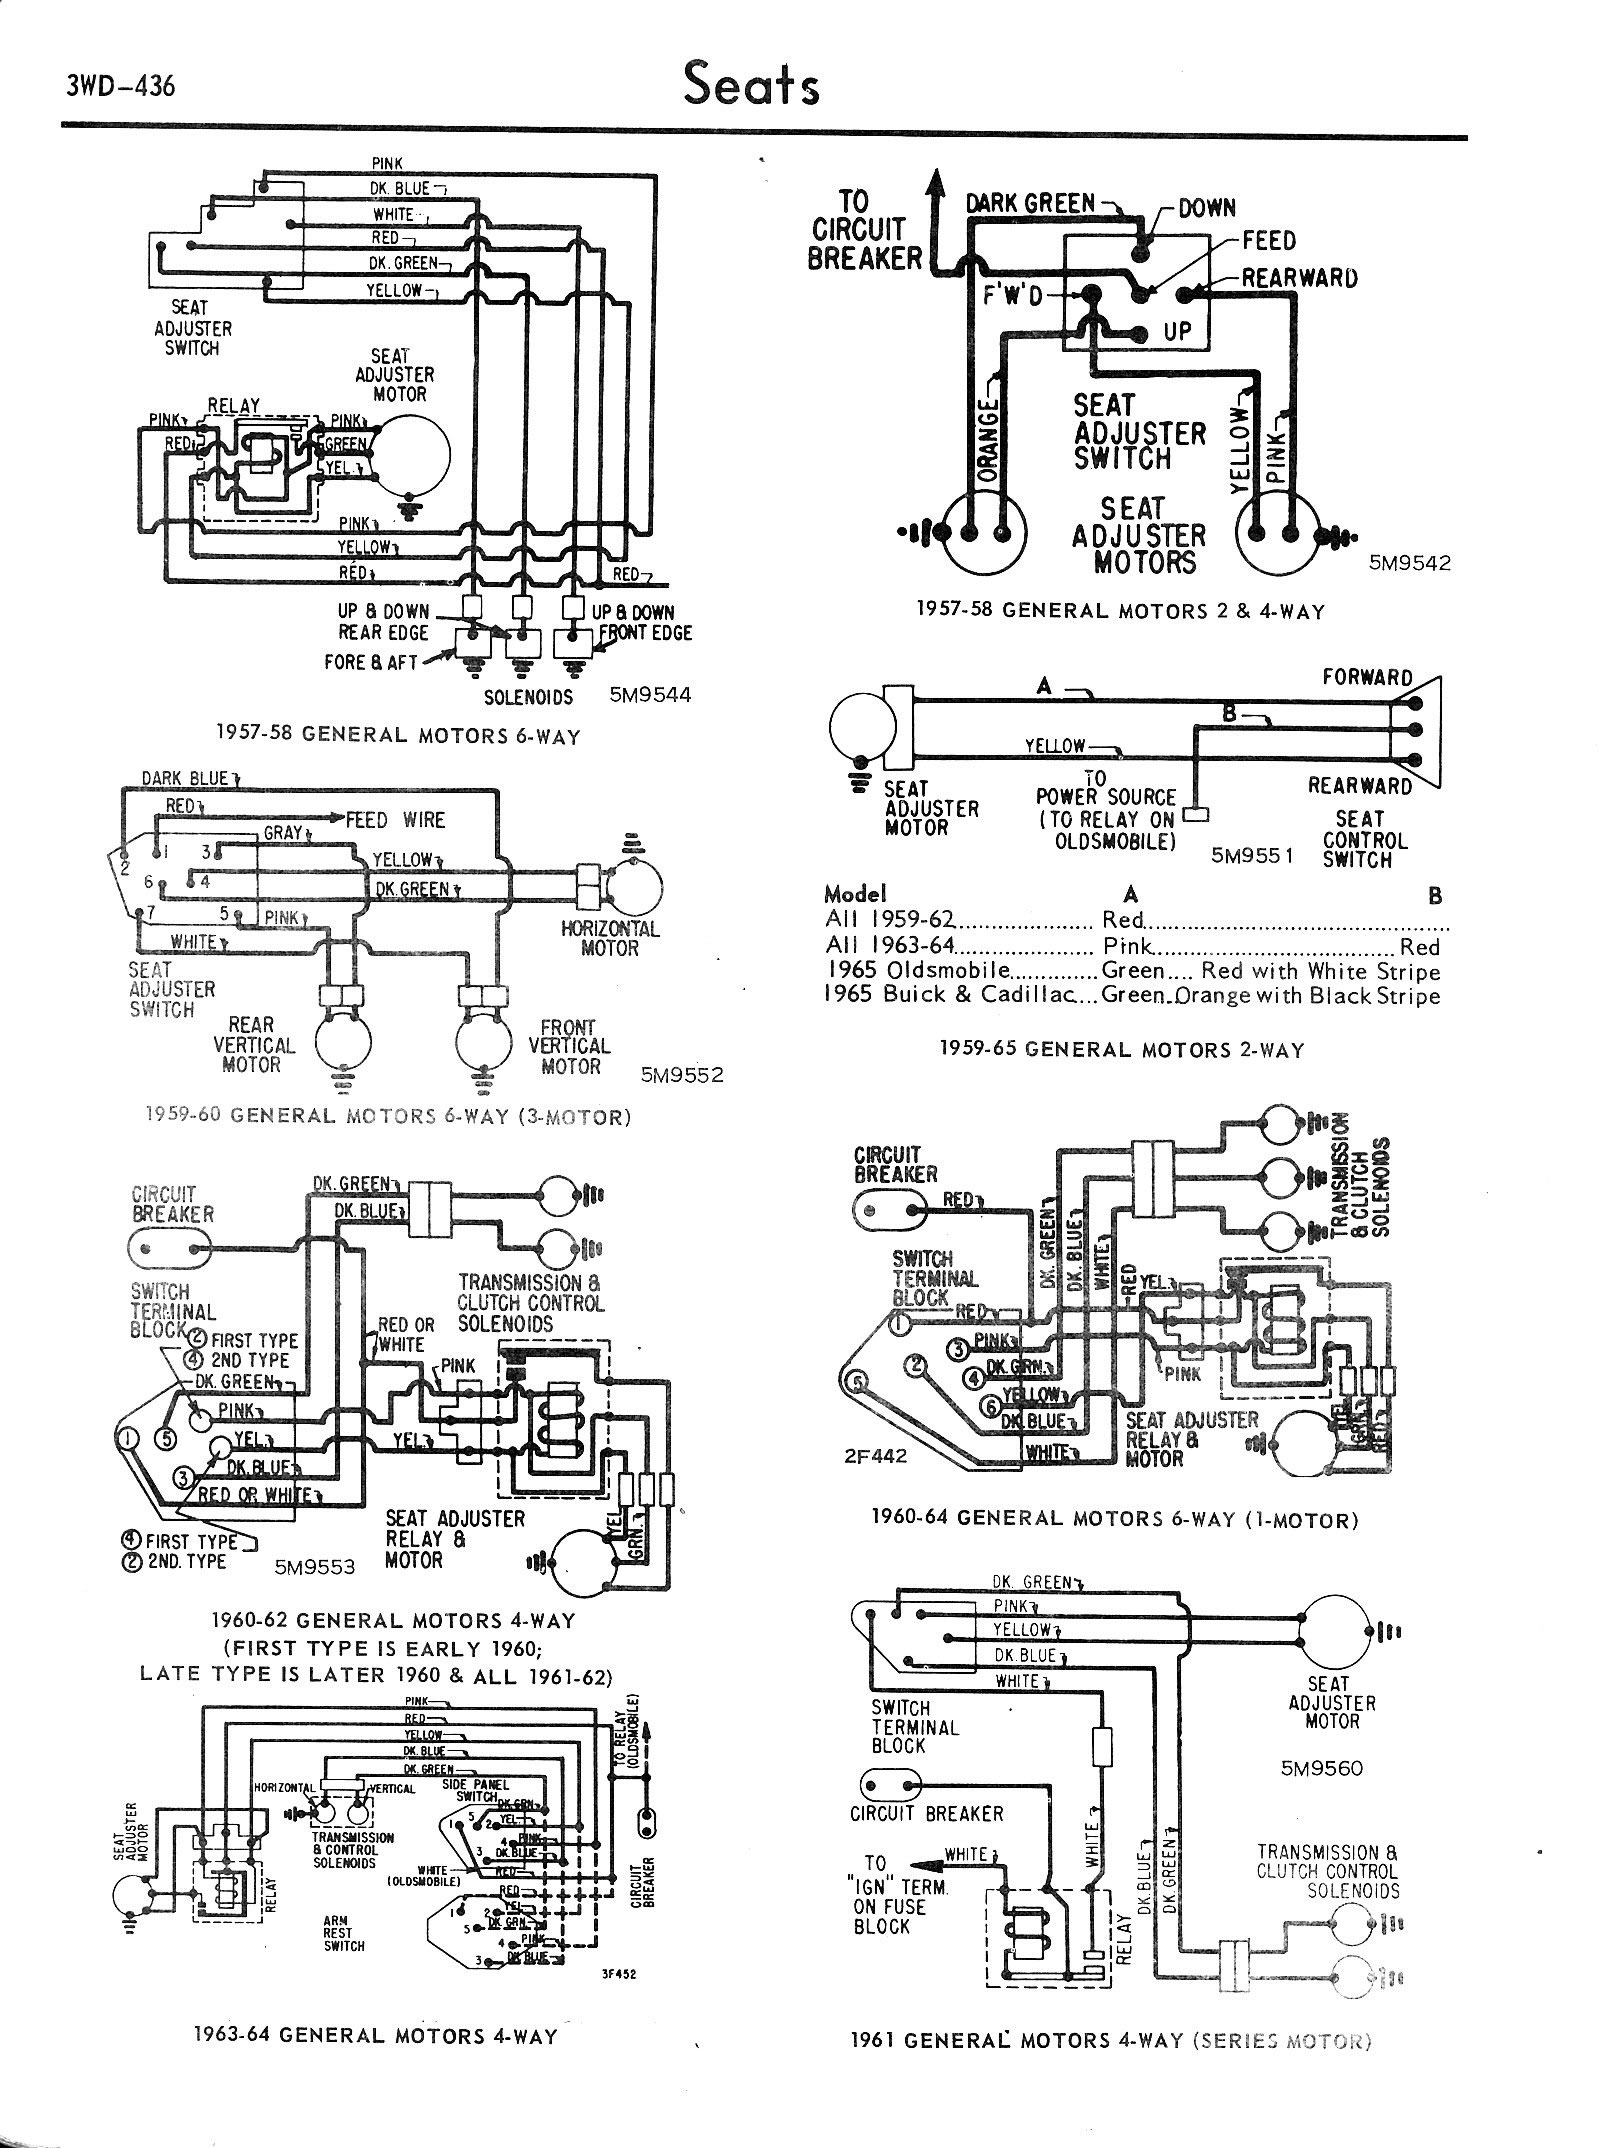 Chevy Diagrams Electrical Engineering World 4way Switch Wiring Diagram C 57 64 Gm A Mix Of 2 Way 4 6